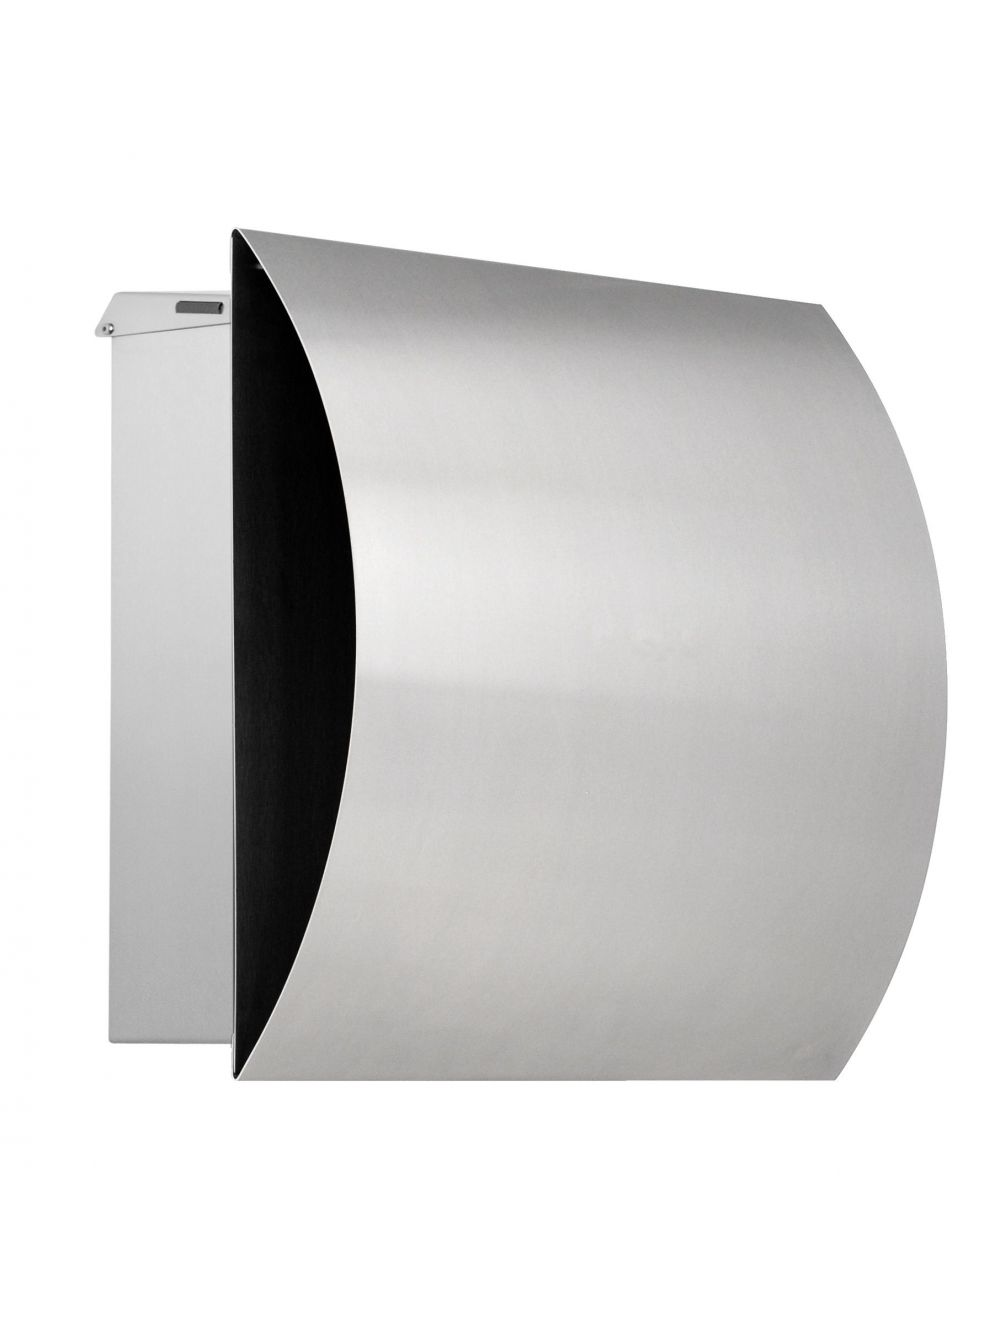 Knobloch Vegas Locking Surface Mount Mailbox with Curved Front and Integrated Newspaper Holder in Brushed Stainless Steel